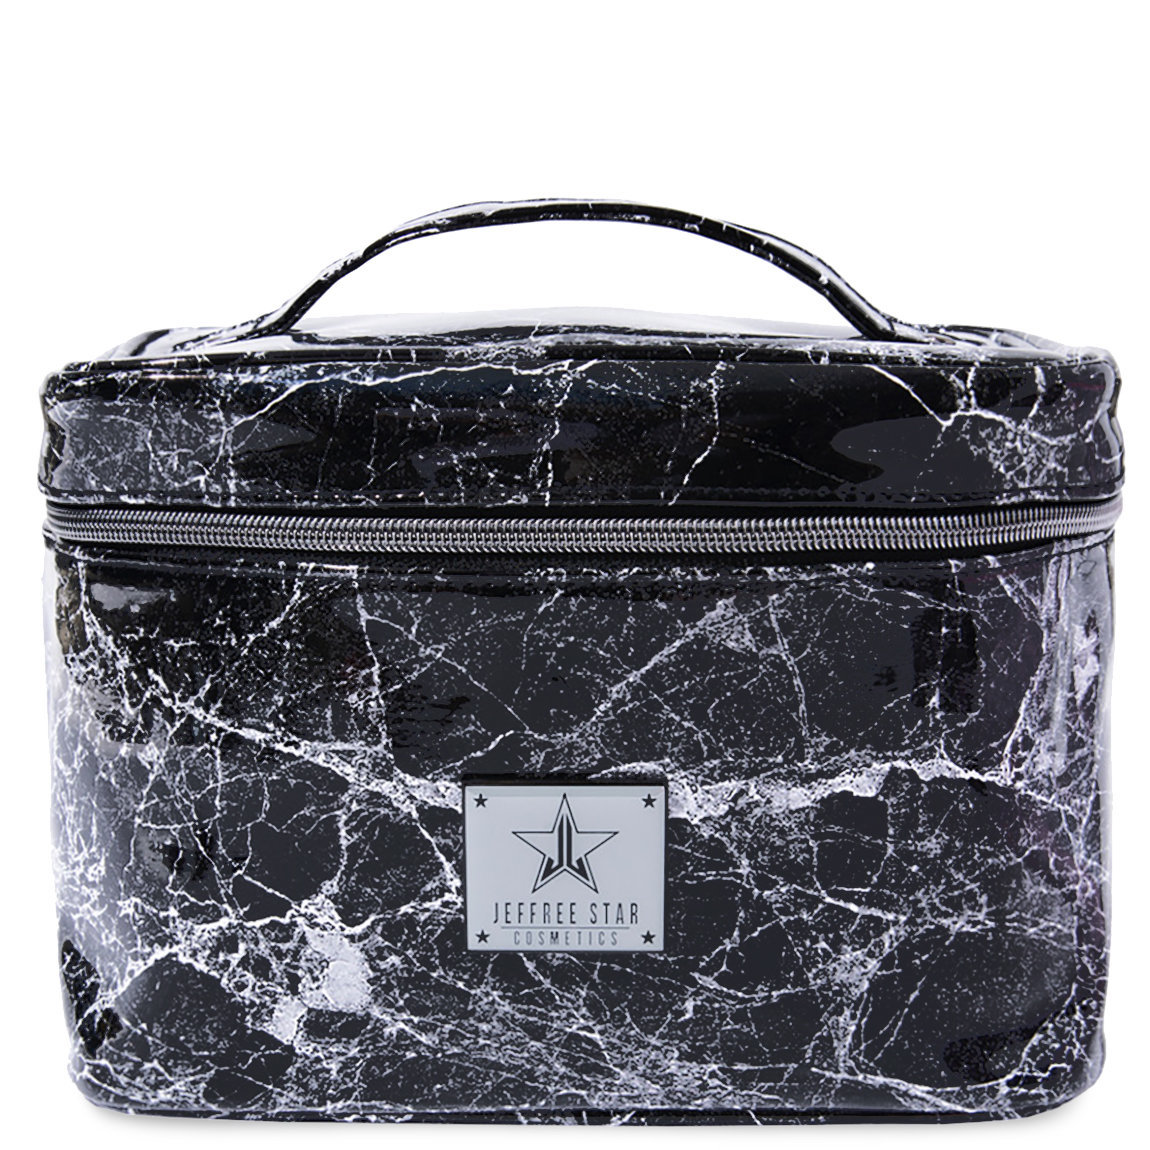 Jeffree Star Cosmetics Travel Makeup Bag Black Marble alternative view 1 - product swatch.